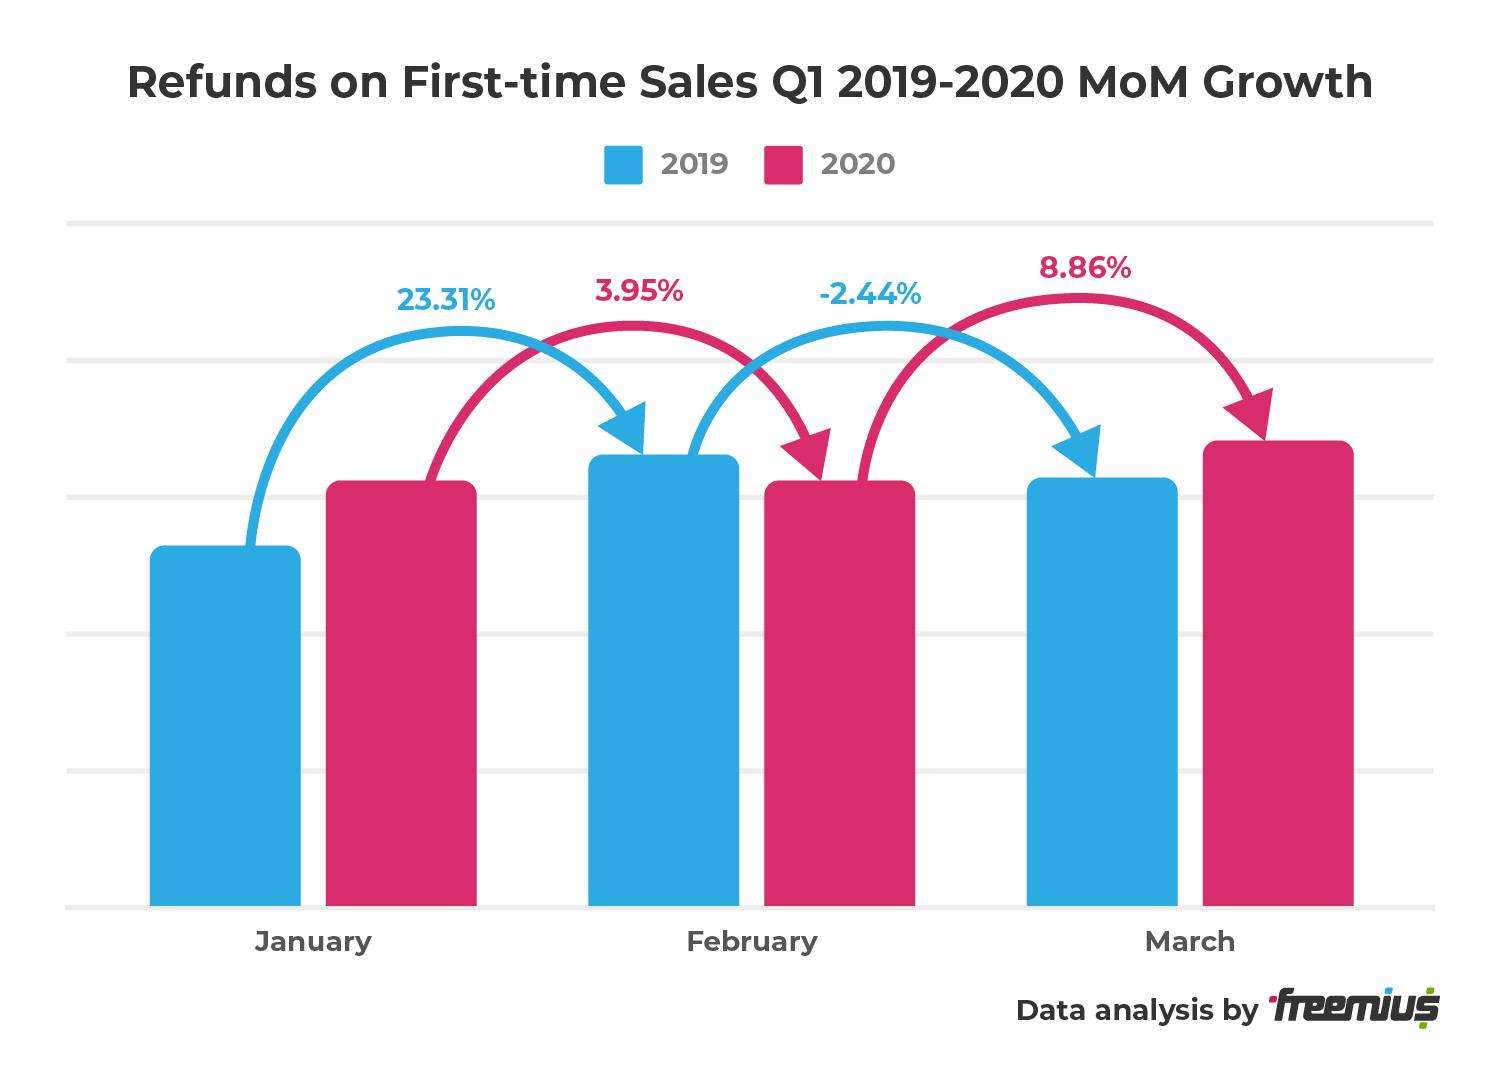 Freemius data analysis - Refunds on First-time Sales Q1 2019-2020 MoM Growth